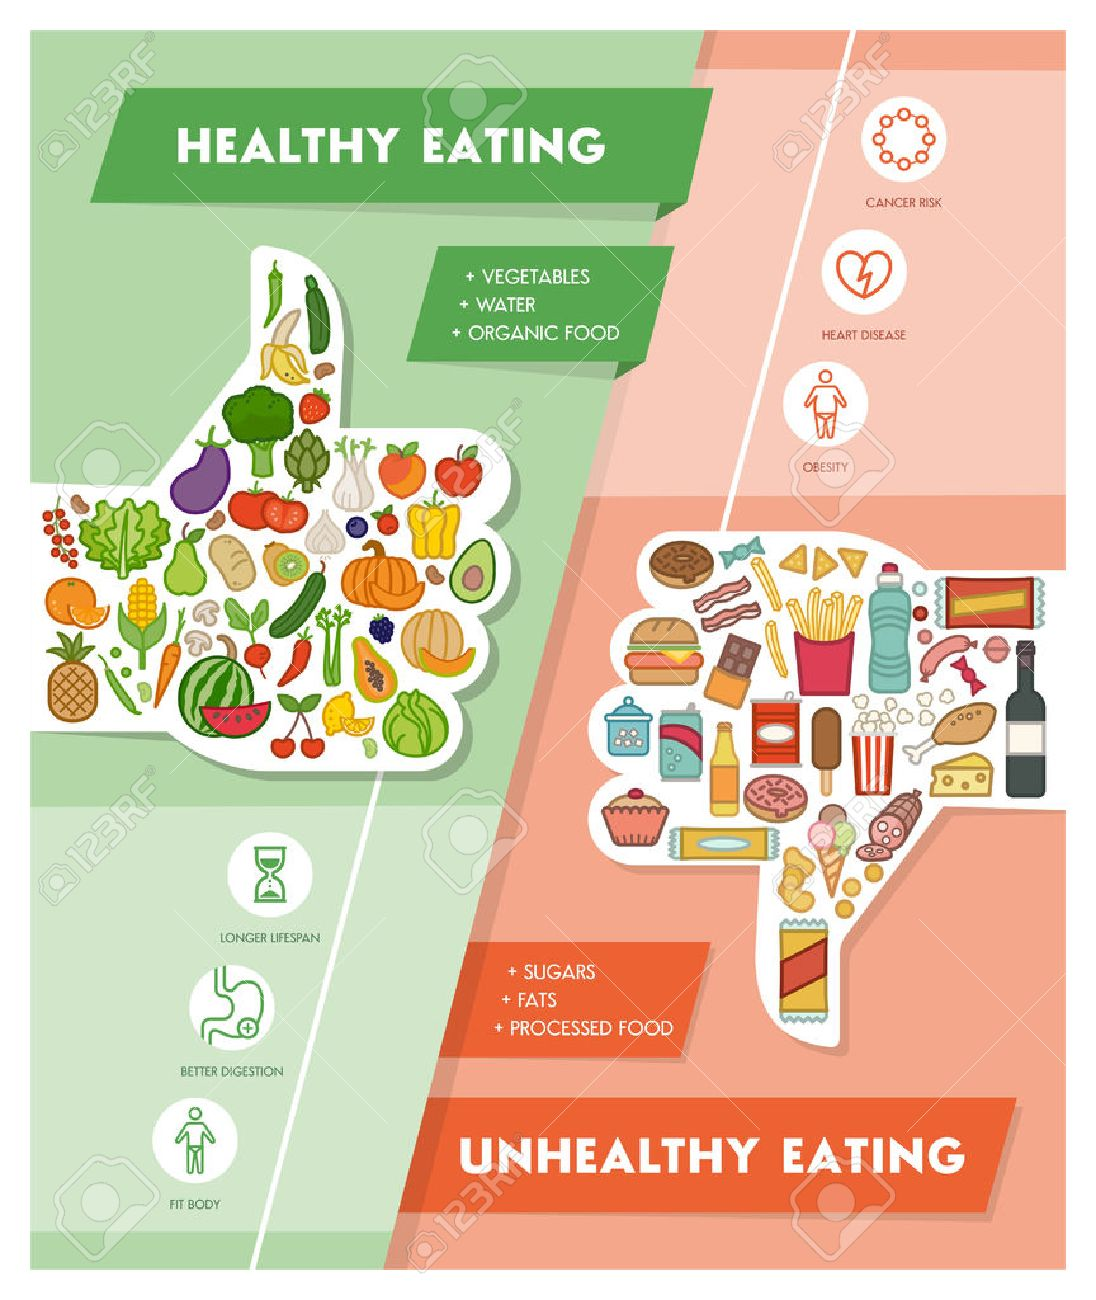 Healthy fresh vegetables and unhealthy junk food comparison with thumbs up and down, healthy eating and diet concept - 58290161